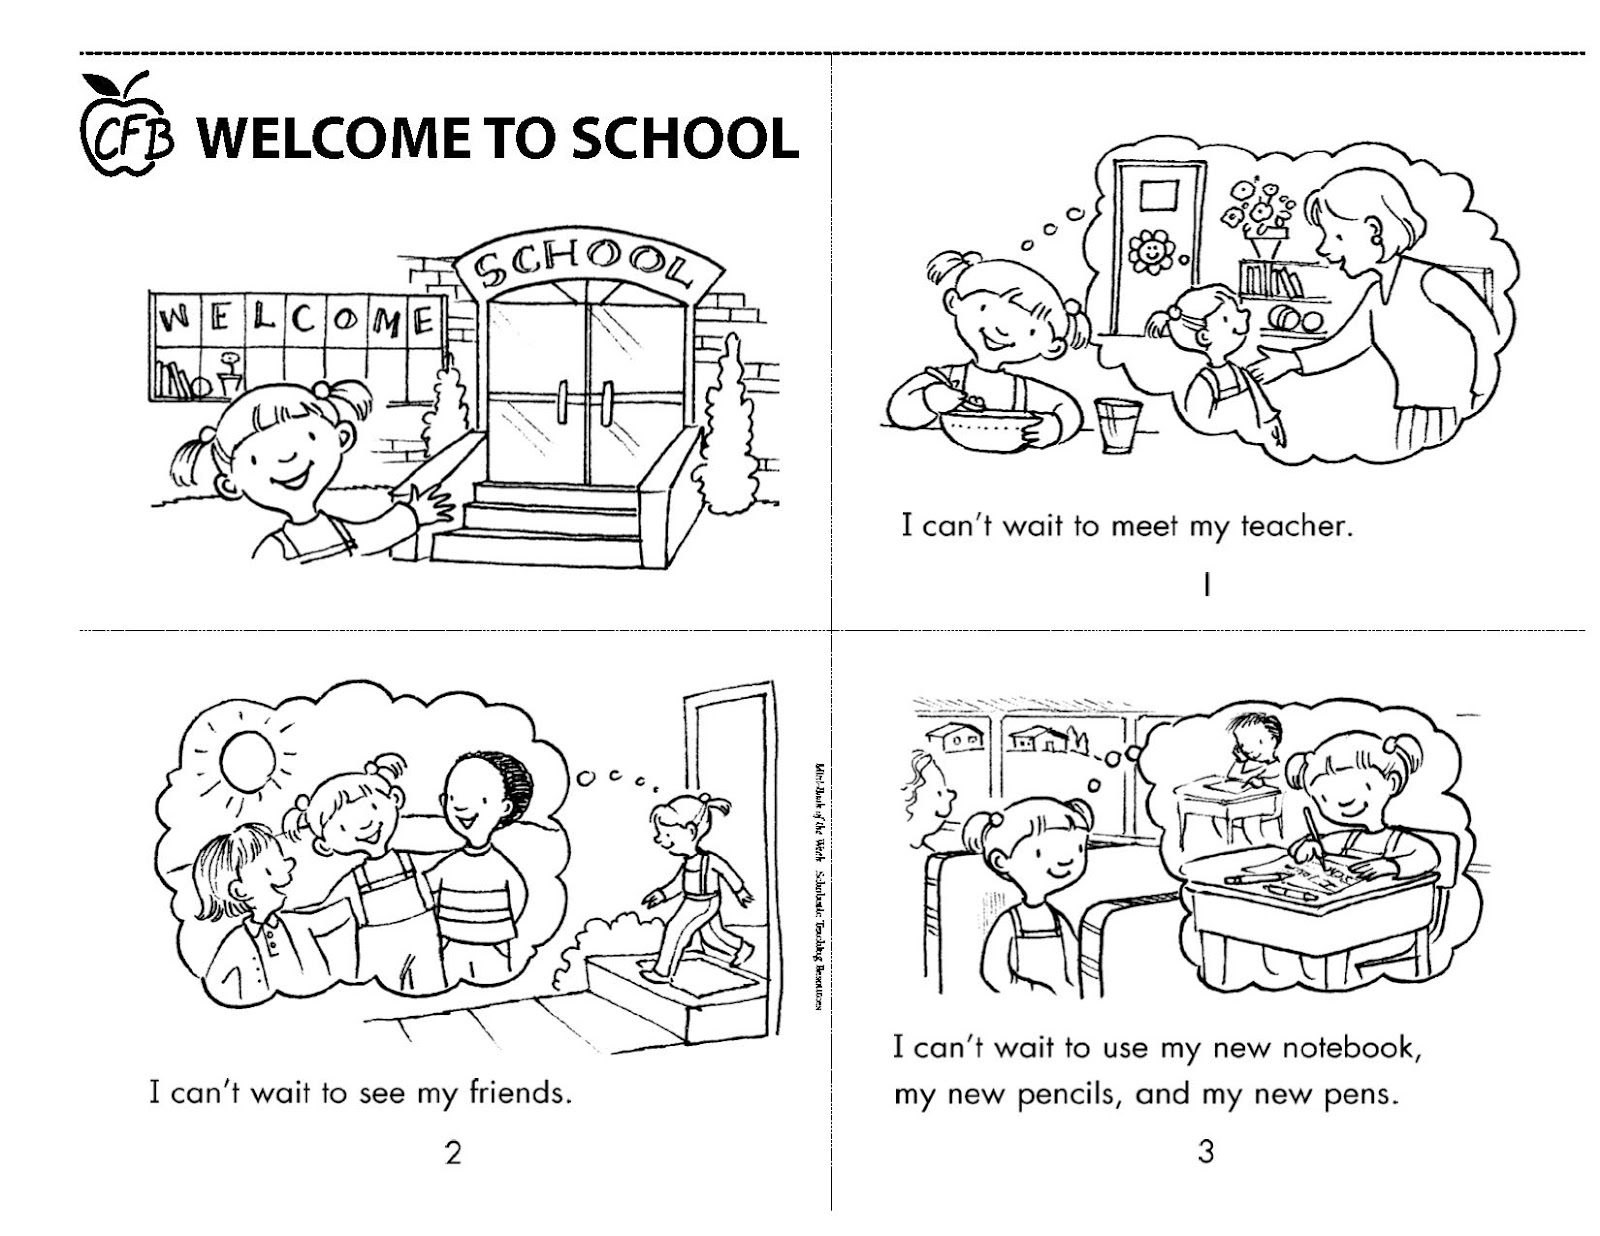 Children Reading Book Coloring Page For Preschoolers Back: Future C-FB: Parenting Young Children: Welcome To School